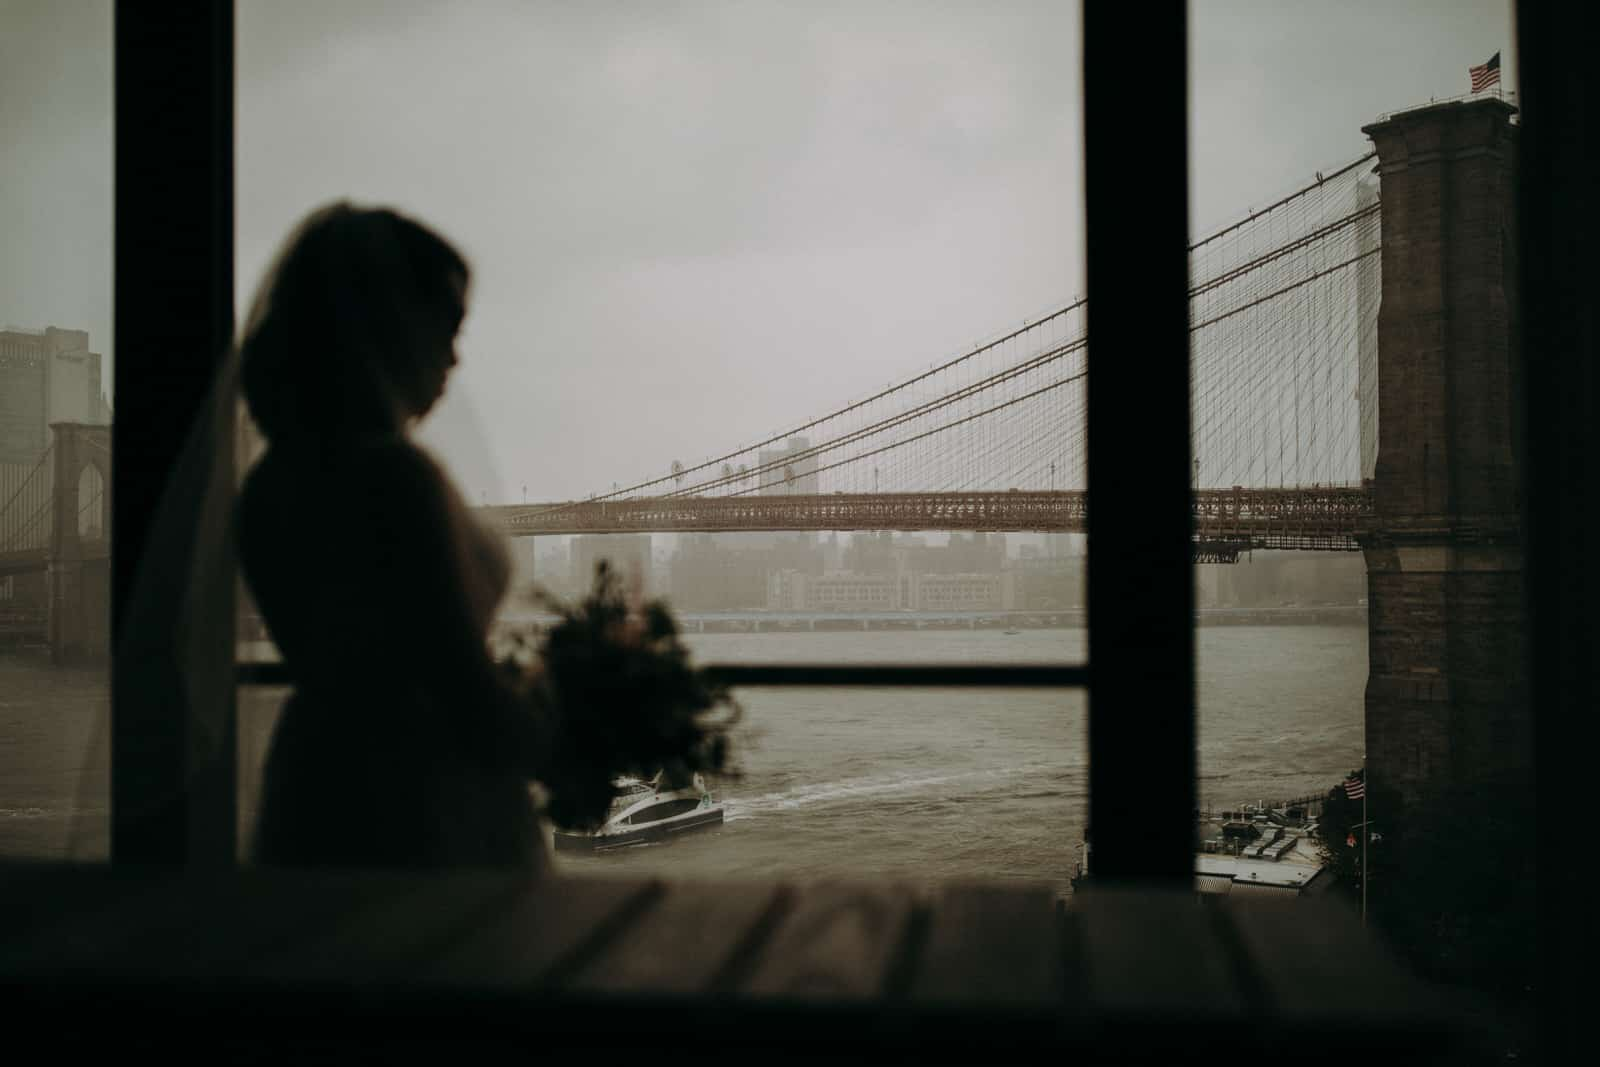 The bride is holding a flower bouquet and is looking out of the window at the Brooklyn Bridge.